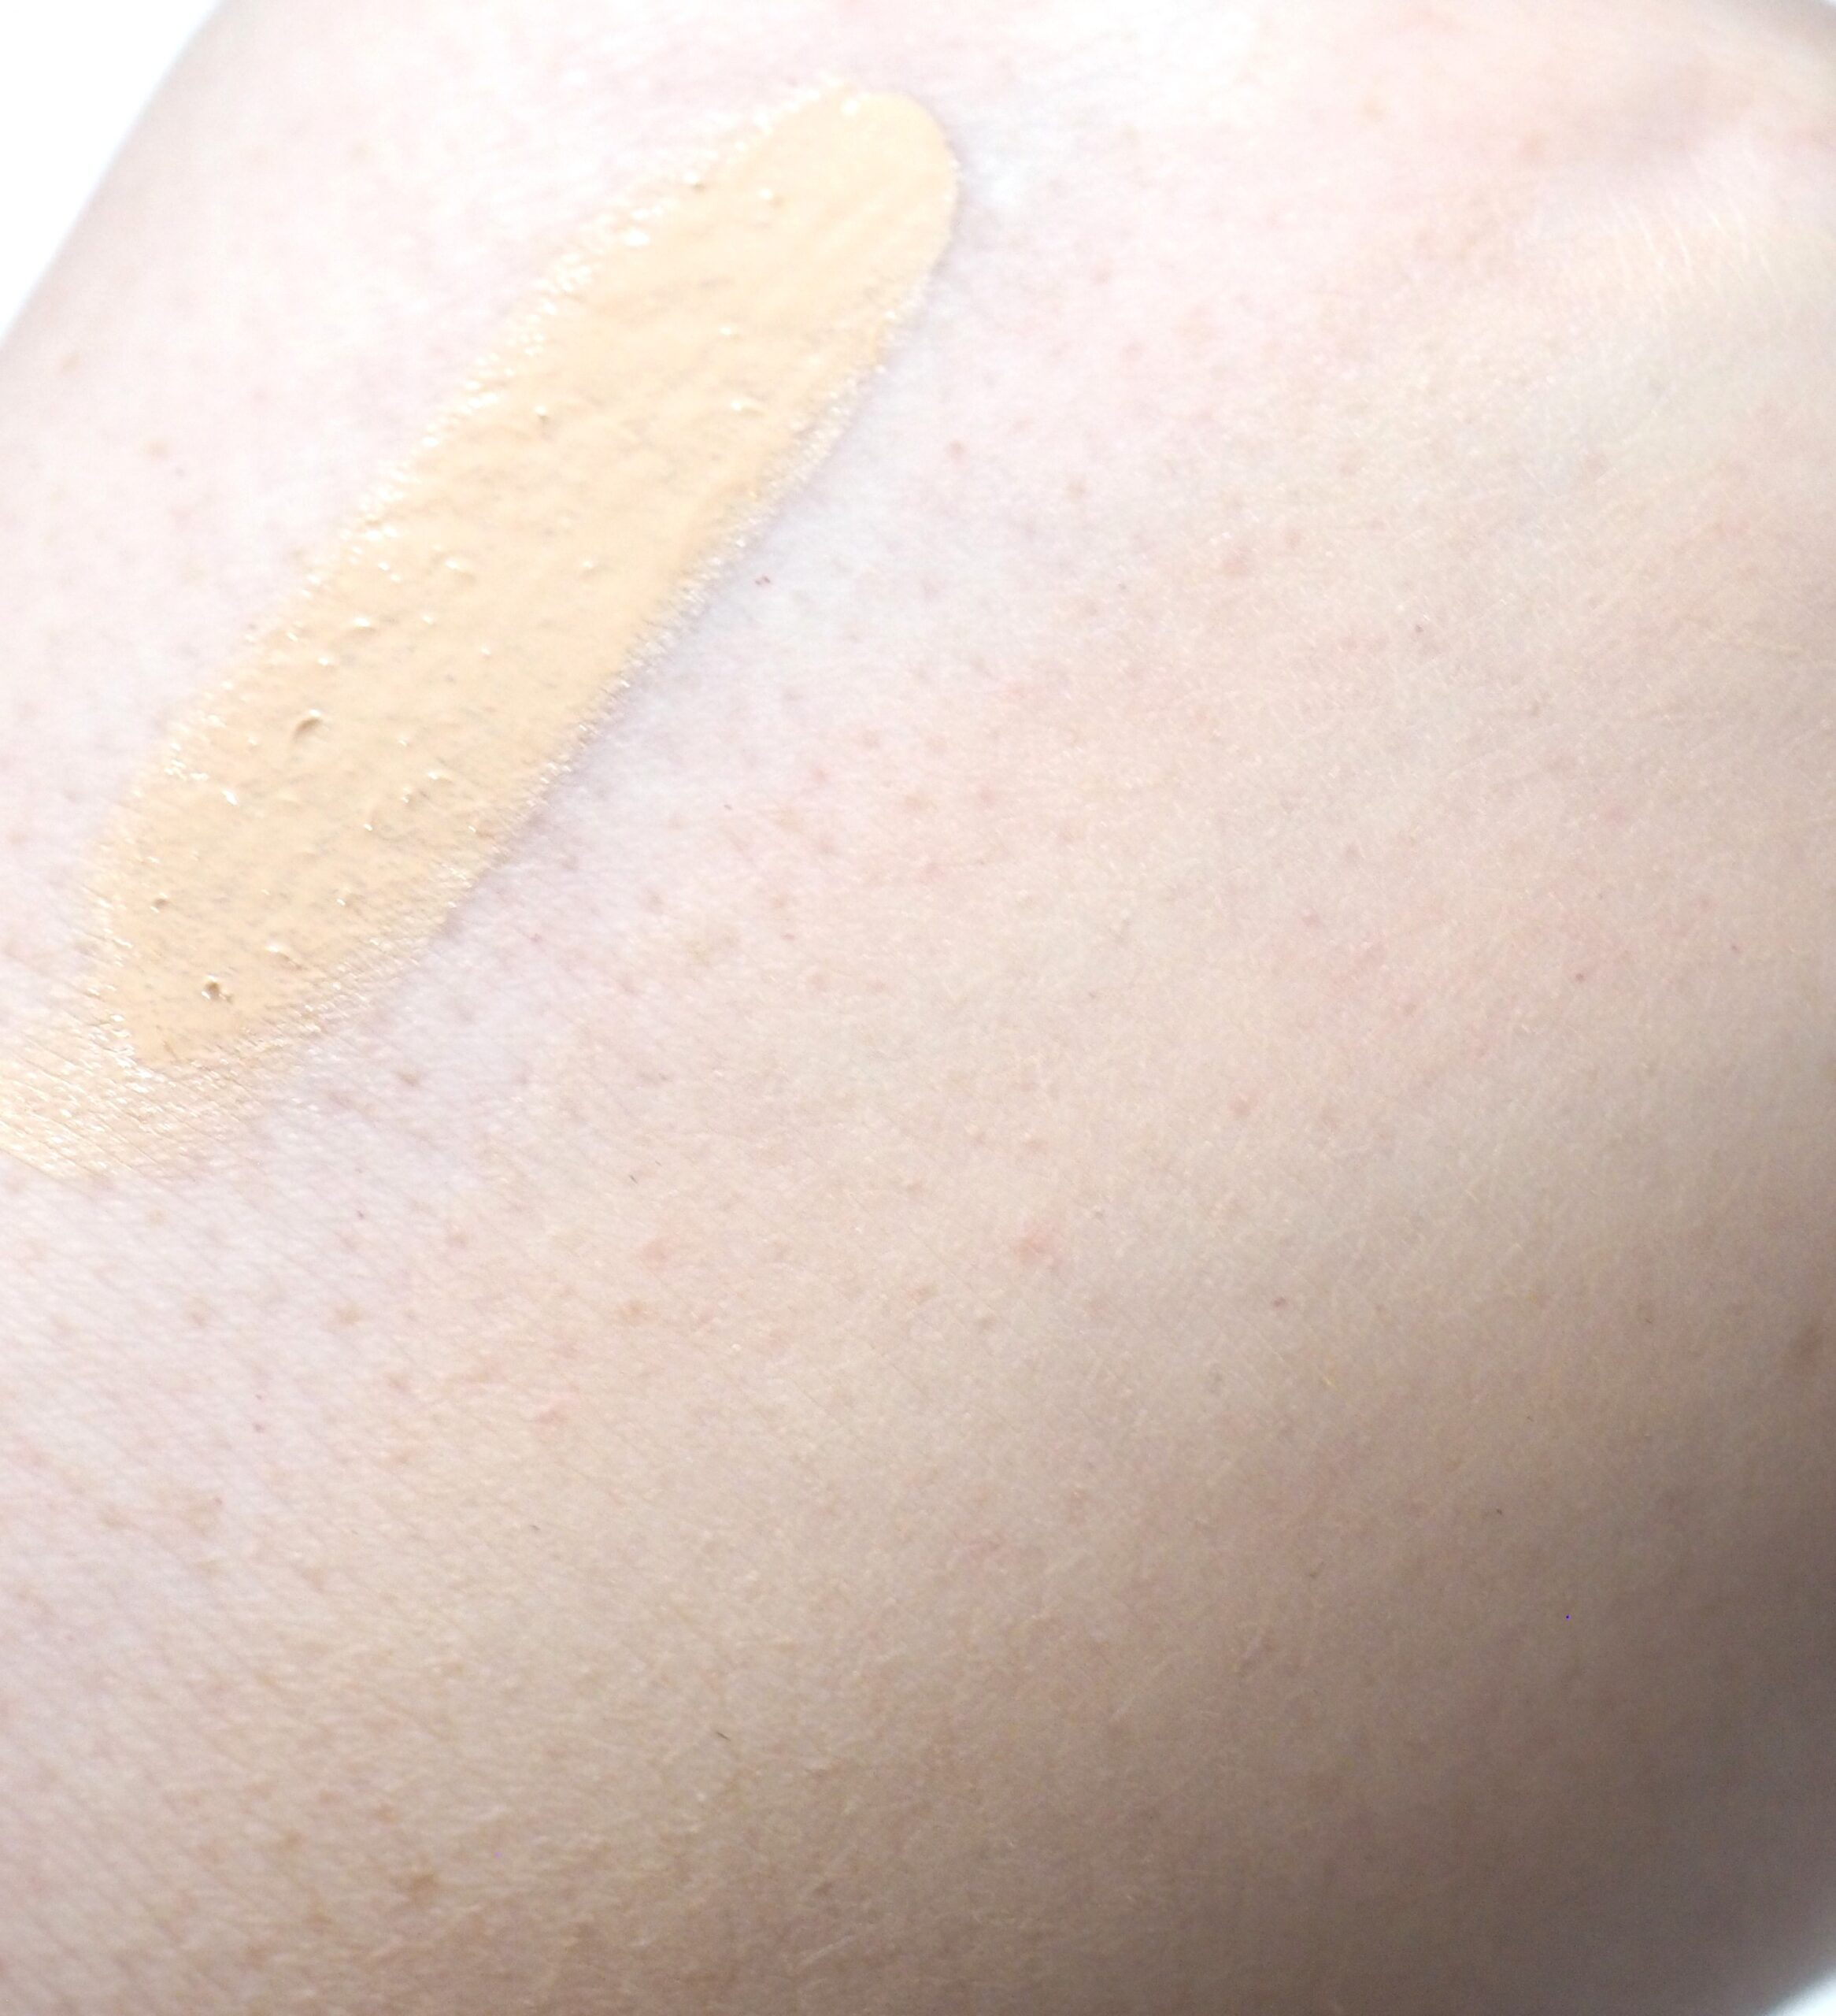 L'Oreal True Match Nude Plumping Tinted Serum